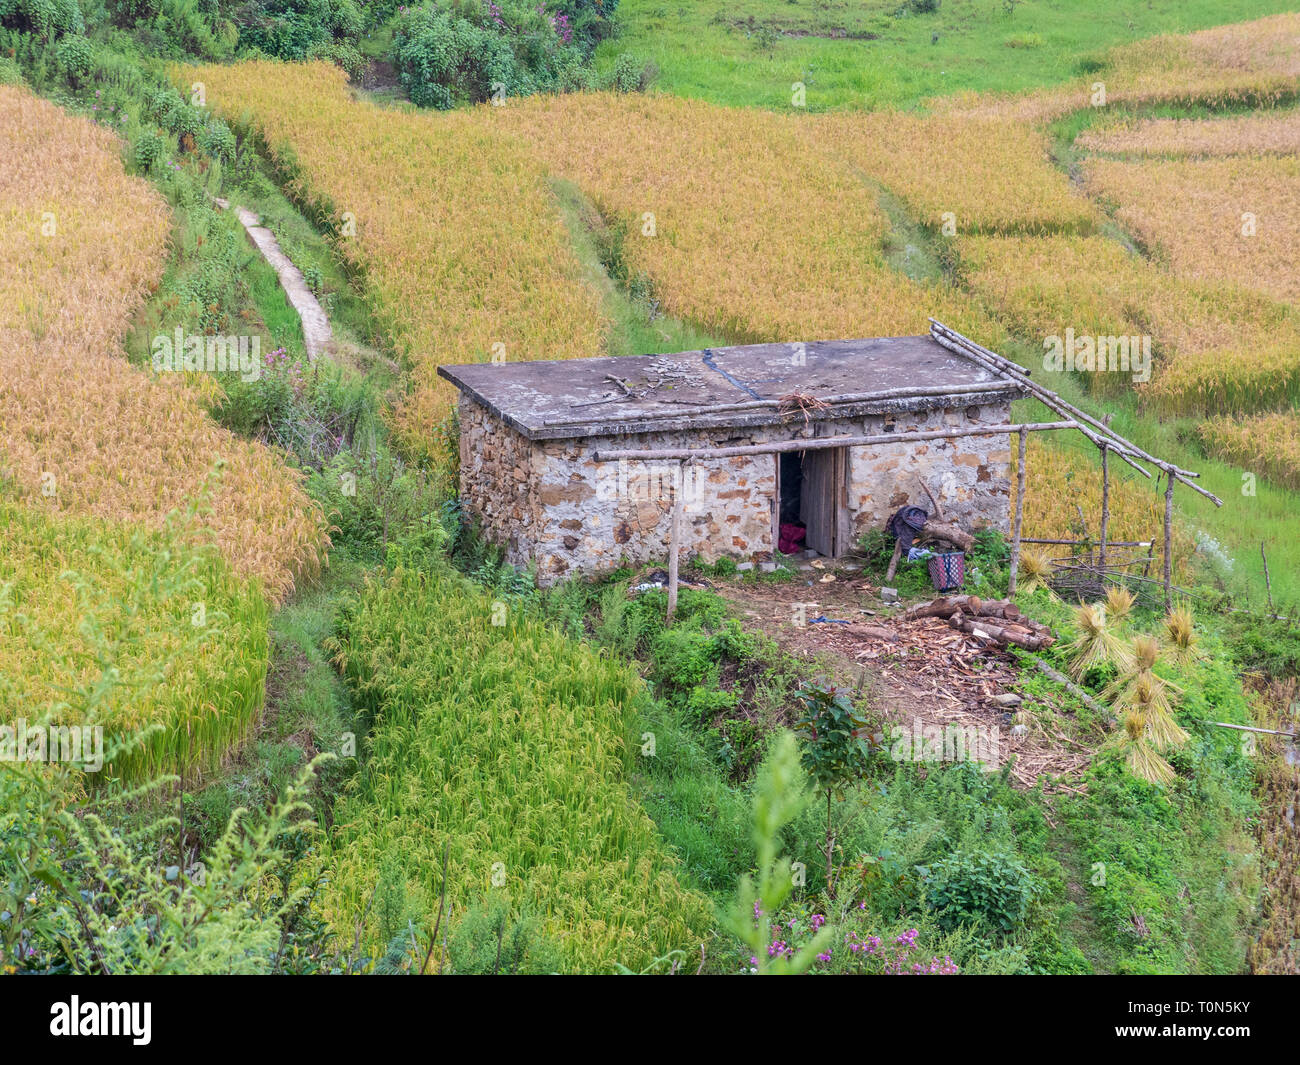 view between bamboo trees on a small farmhouse surrounded by rice paddies, Yunnan, China. - Stock Image